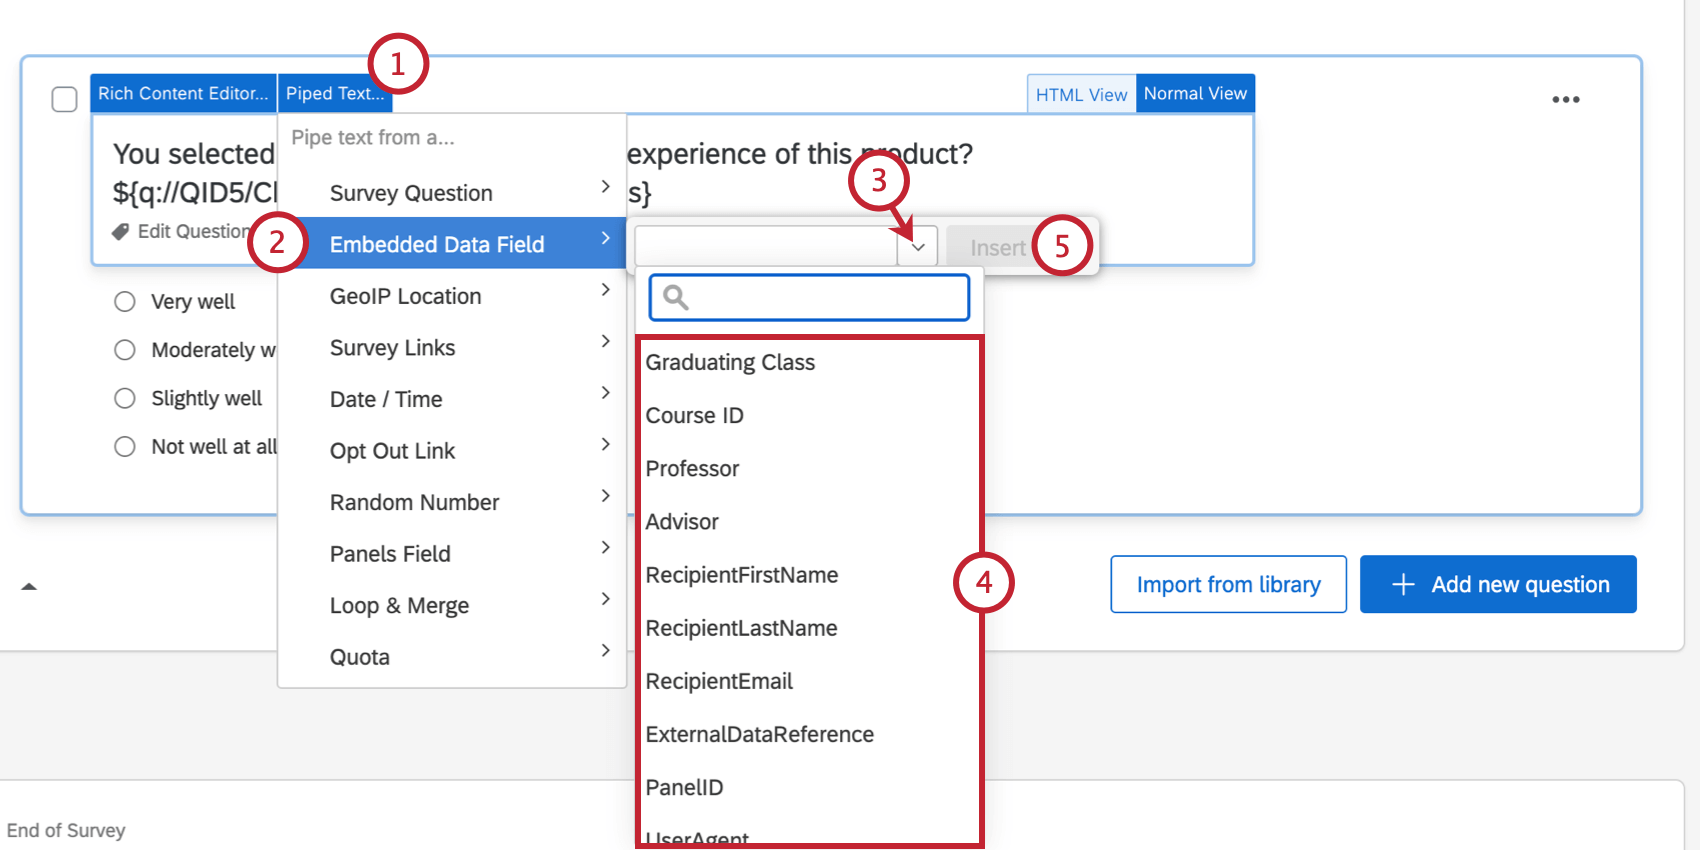 Embedded Data piped text menu is open. Field with dropdown for selecting existing embedded data to insert